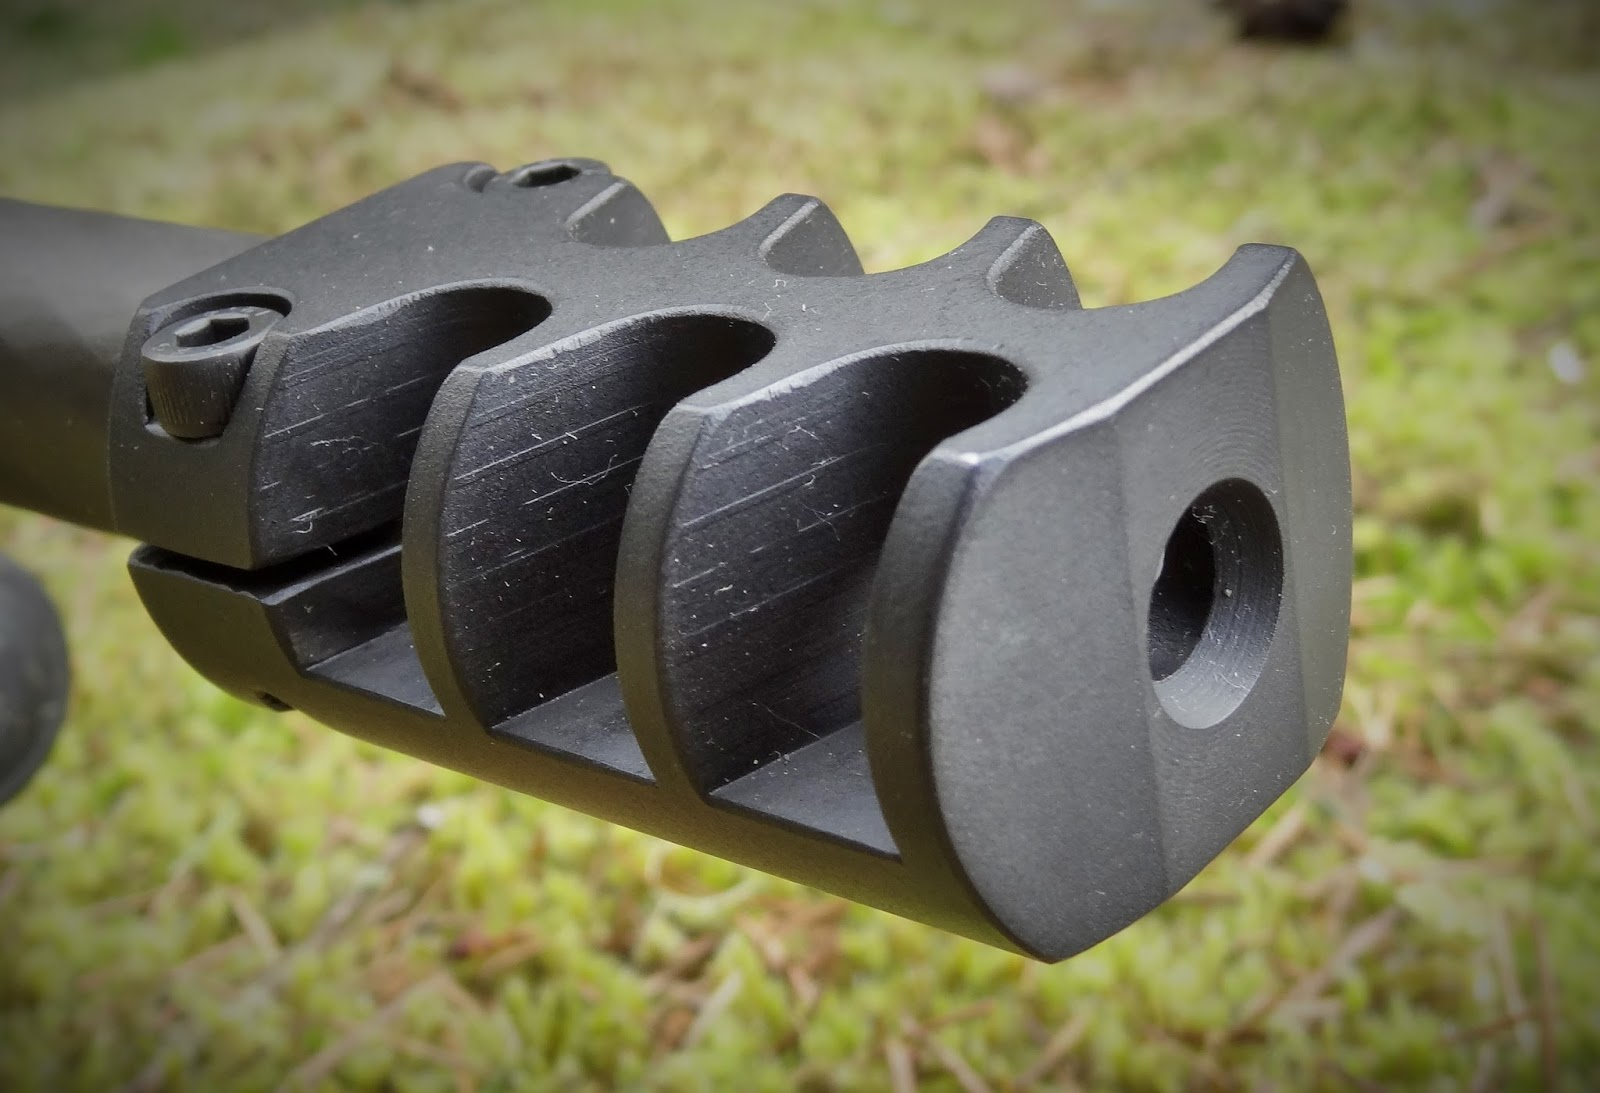 Rose Glen North Dakota ⁓ Try These 450 Bushmaster Muzzle Brake